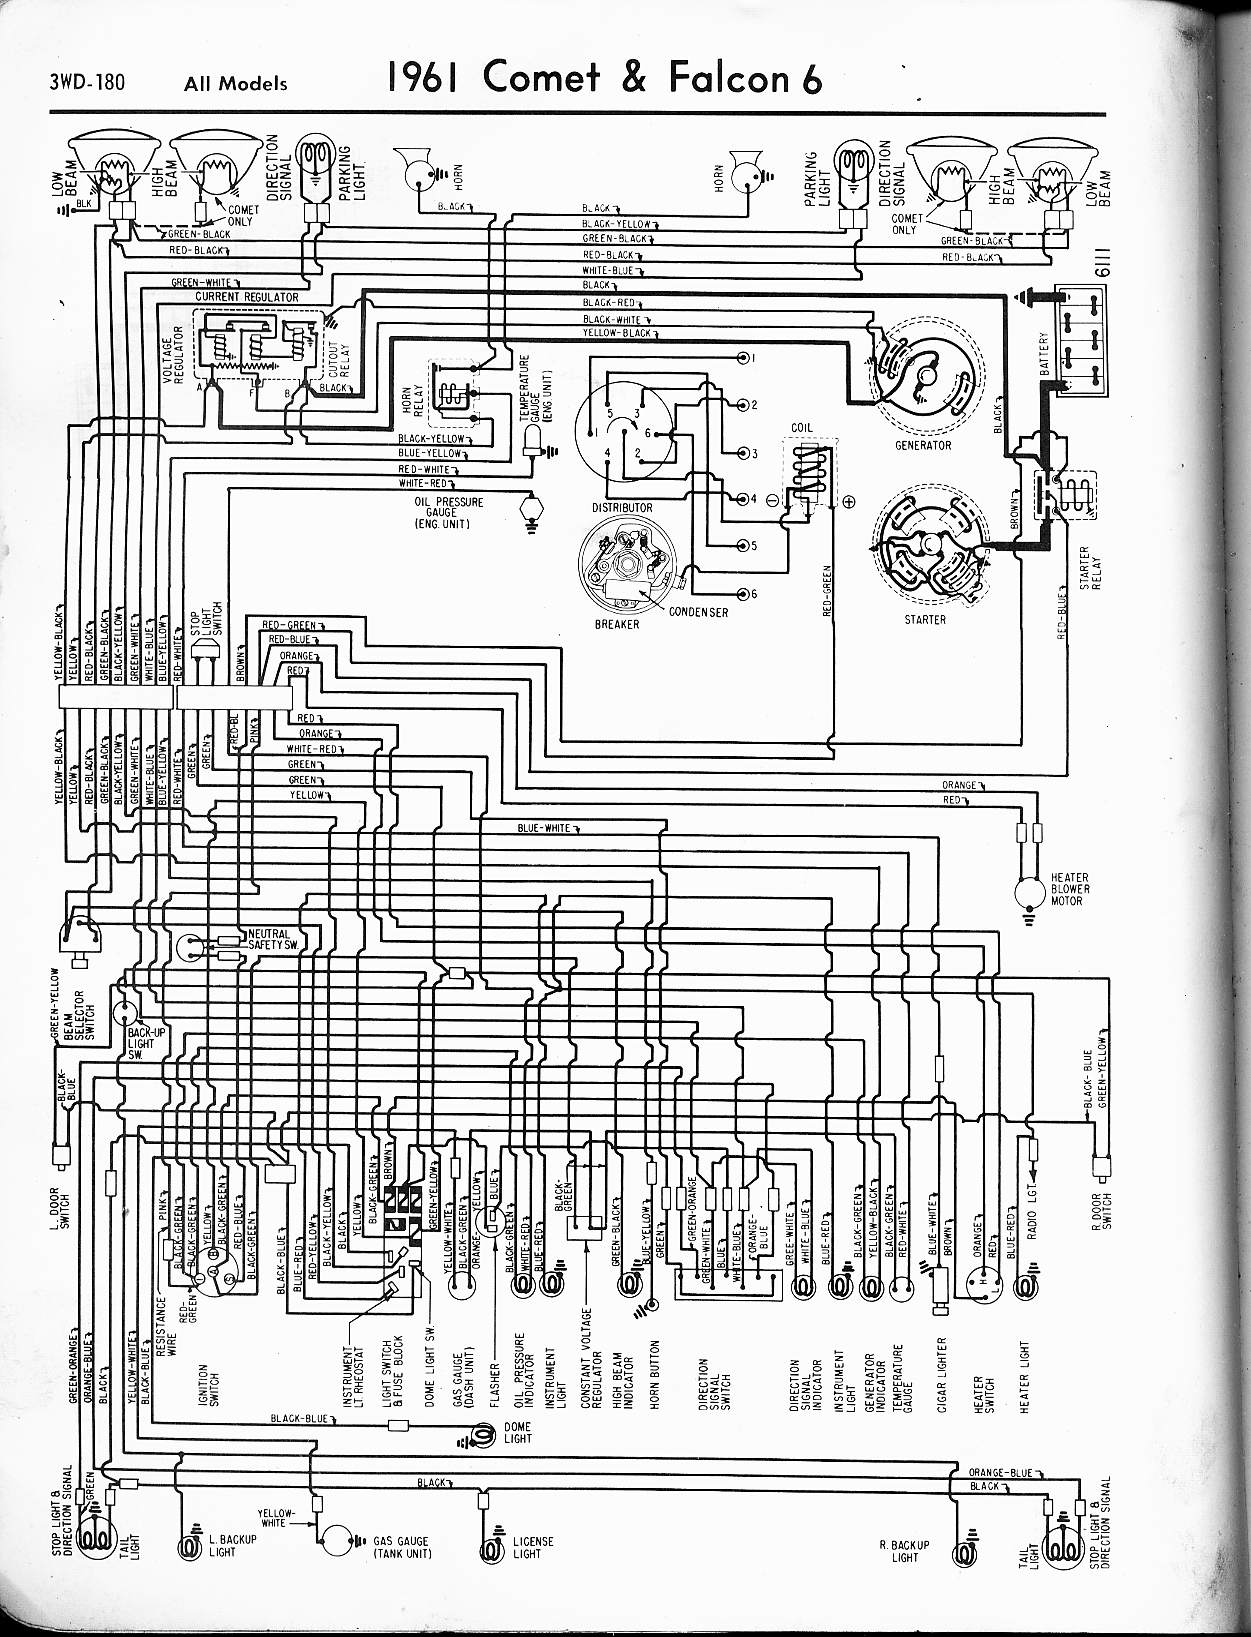 MWire5765 180 au falcon wiring diagram falcon guide \u2022 wiring diagrams j squared co  at reclaimingppi.co